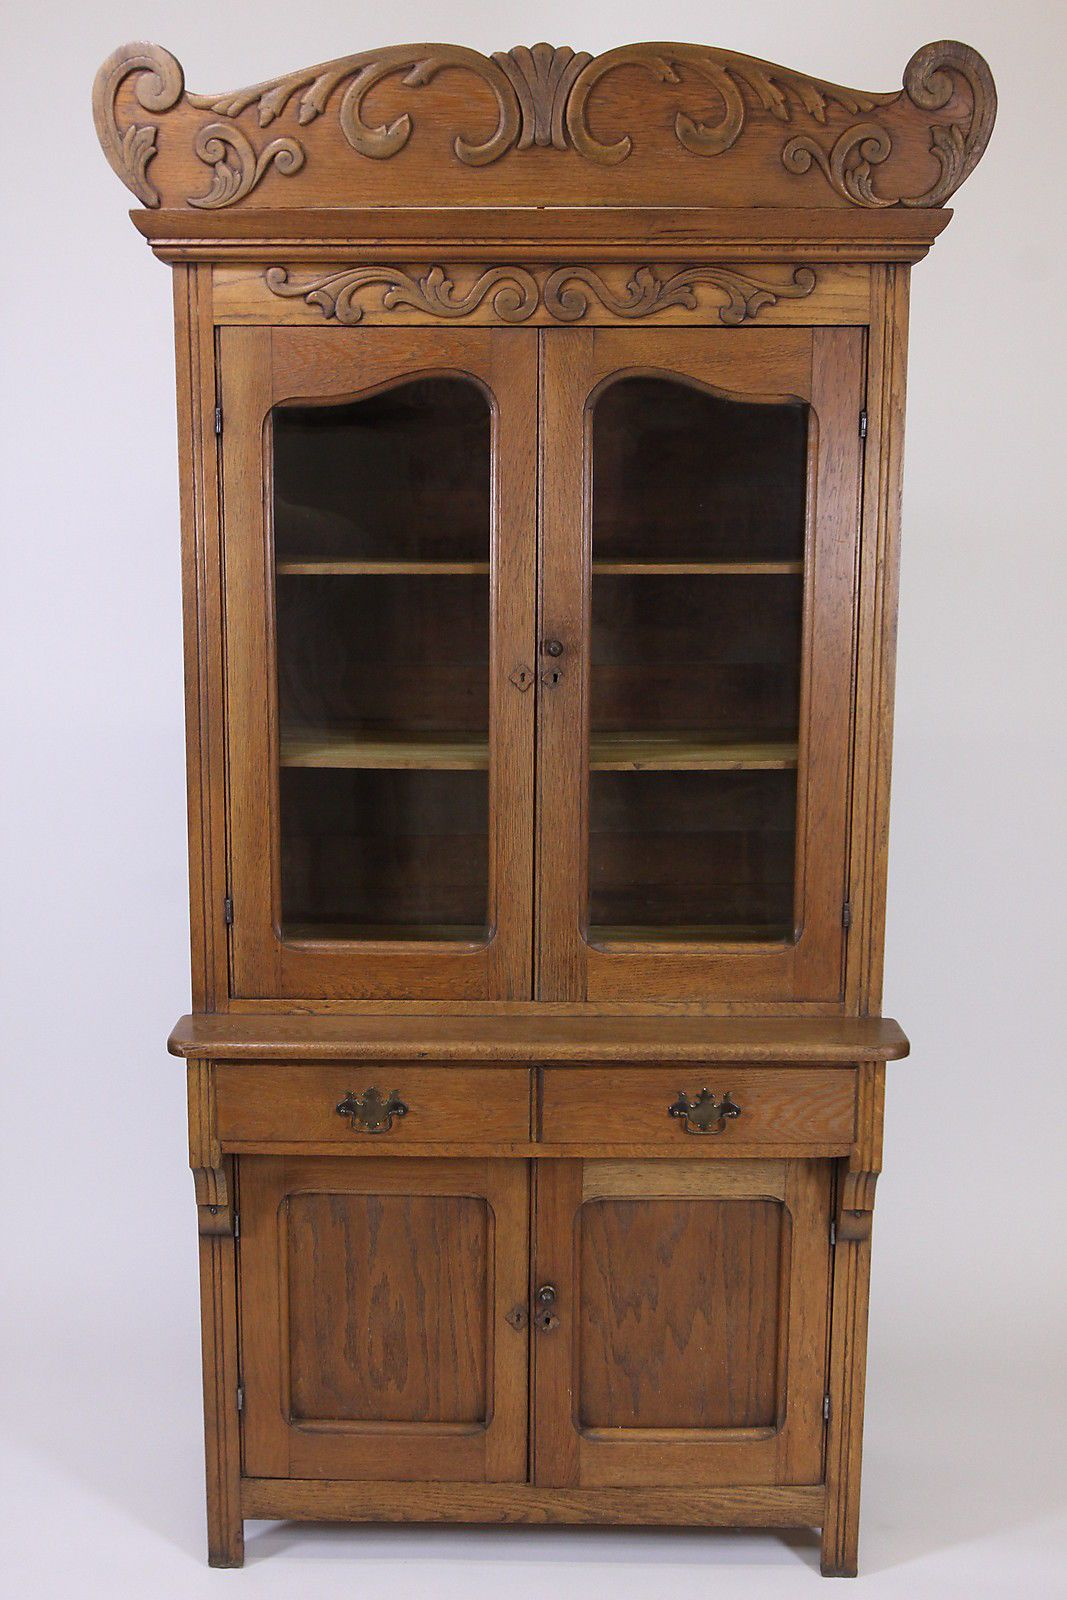 cabinets ideas design antiques for cupboards cabinetry your antique beautiful cabinet with hutch cupboard furniture